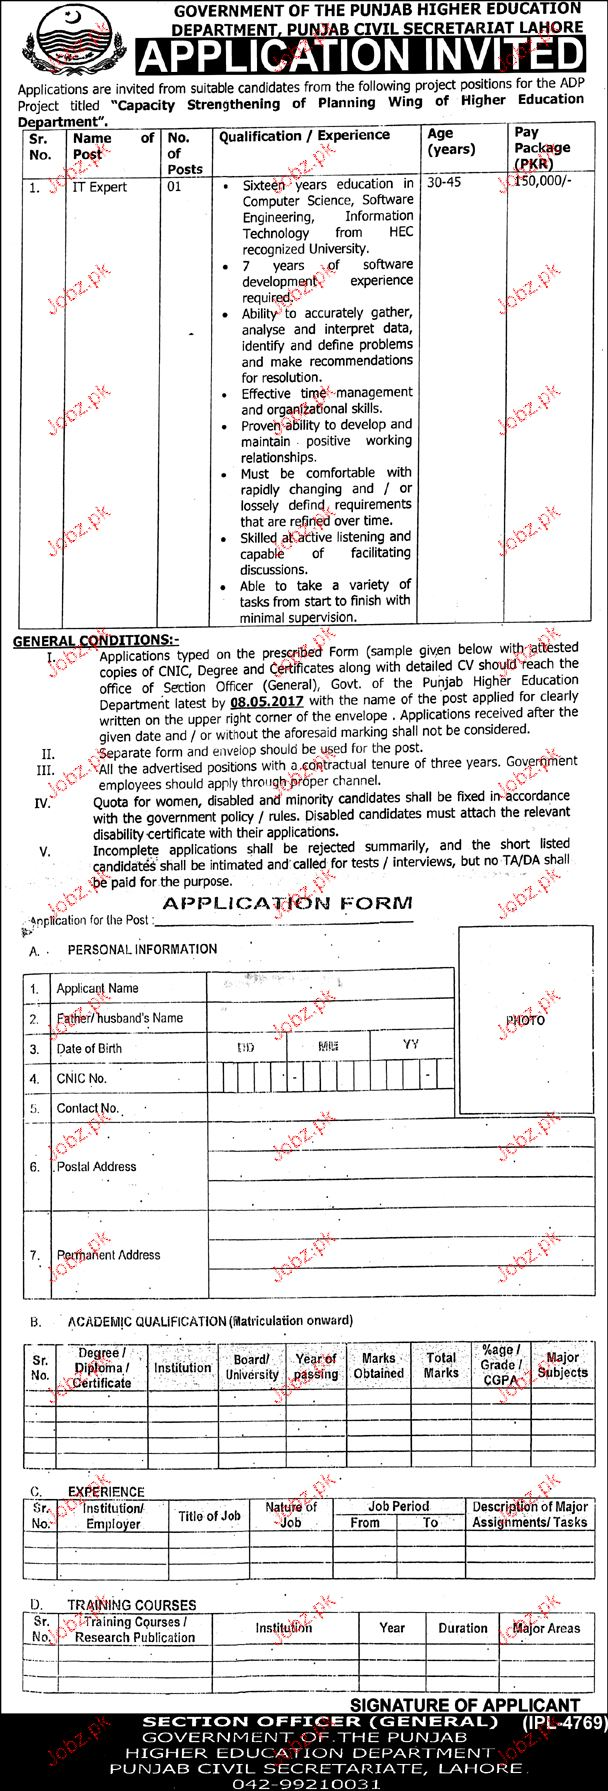 IT Experts Job in Punjab Higher Education Department